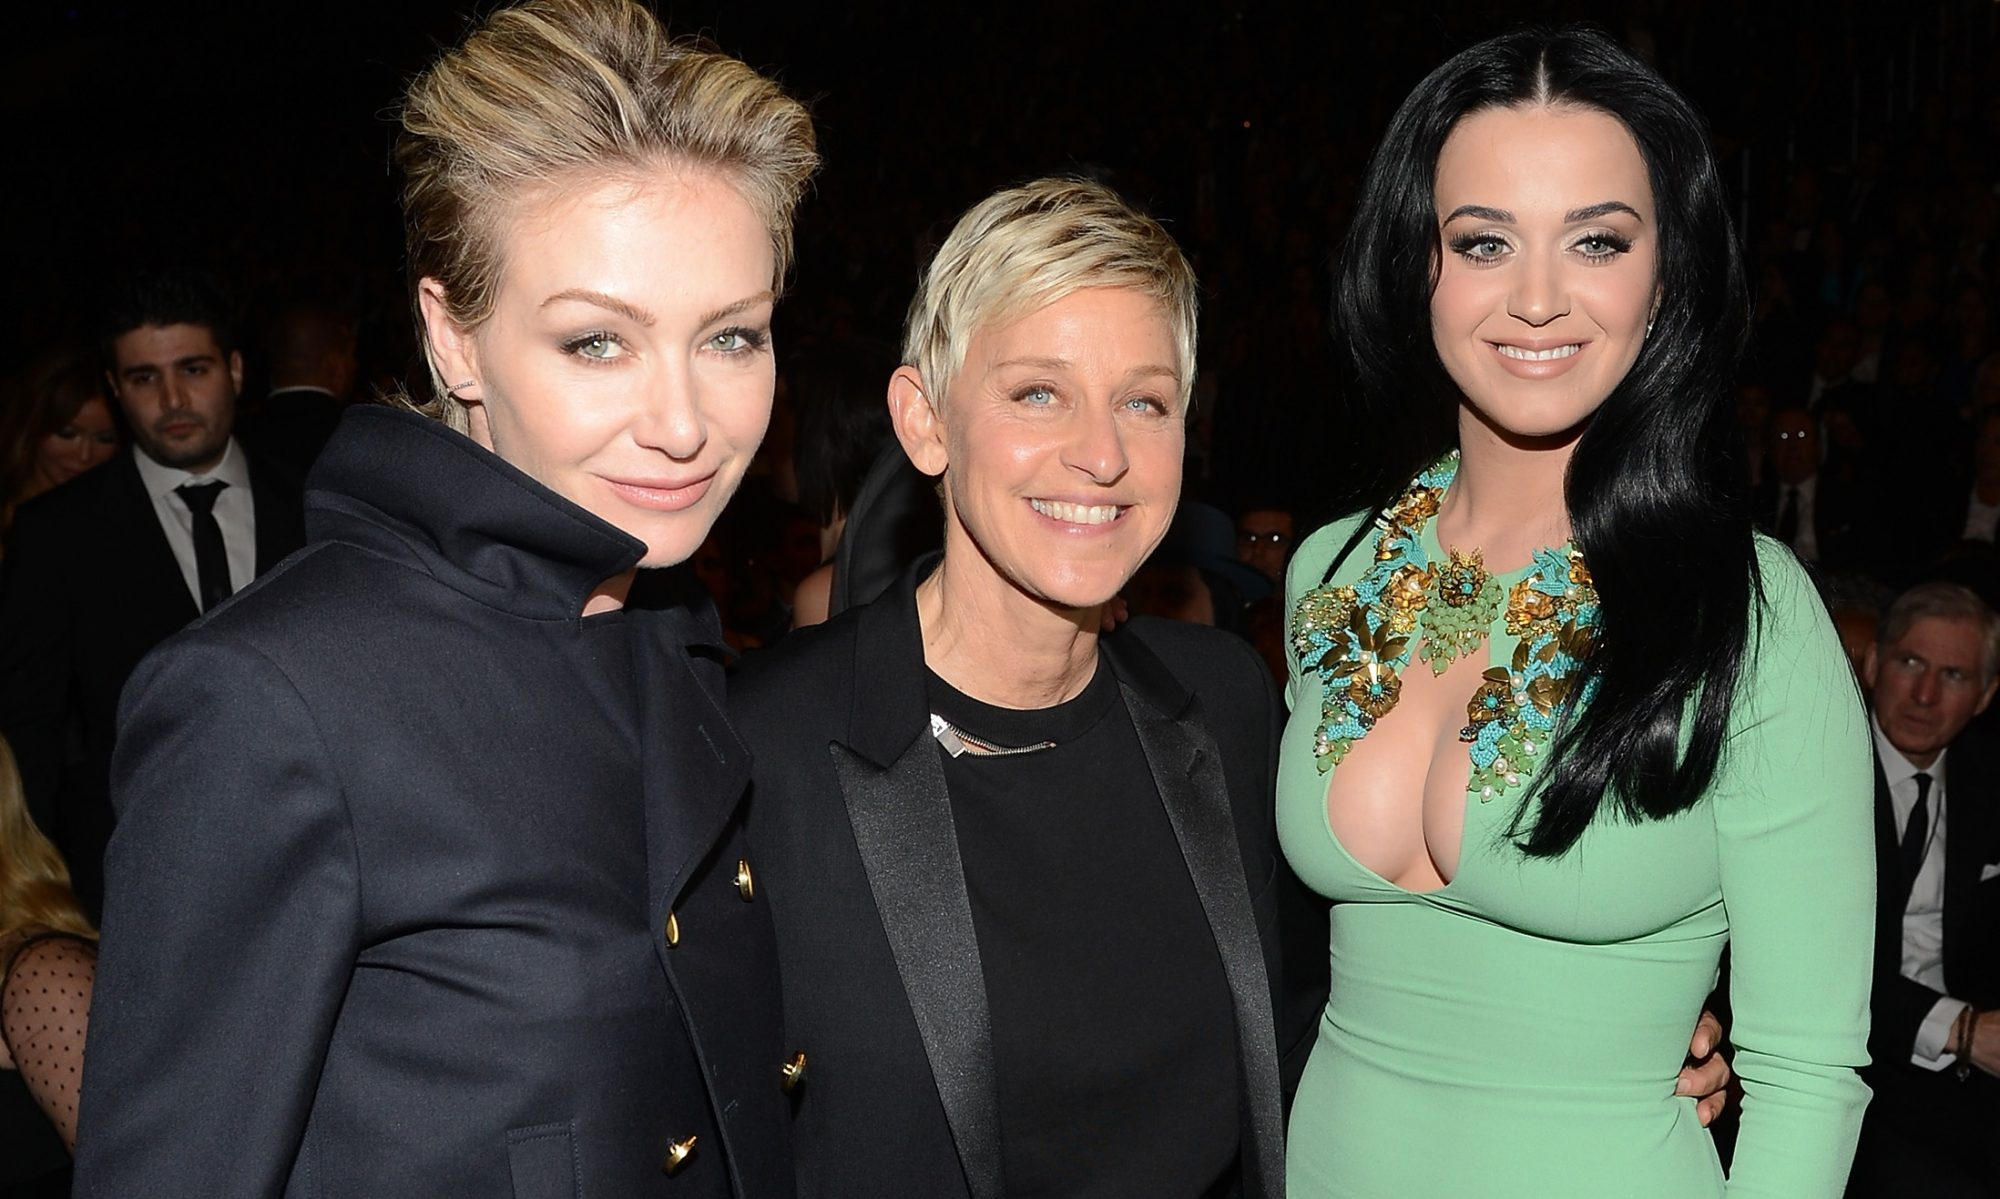 ellen degeneres, portia de rossi, and katy perry